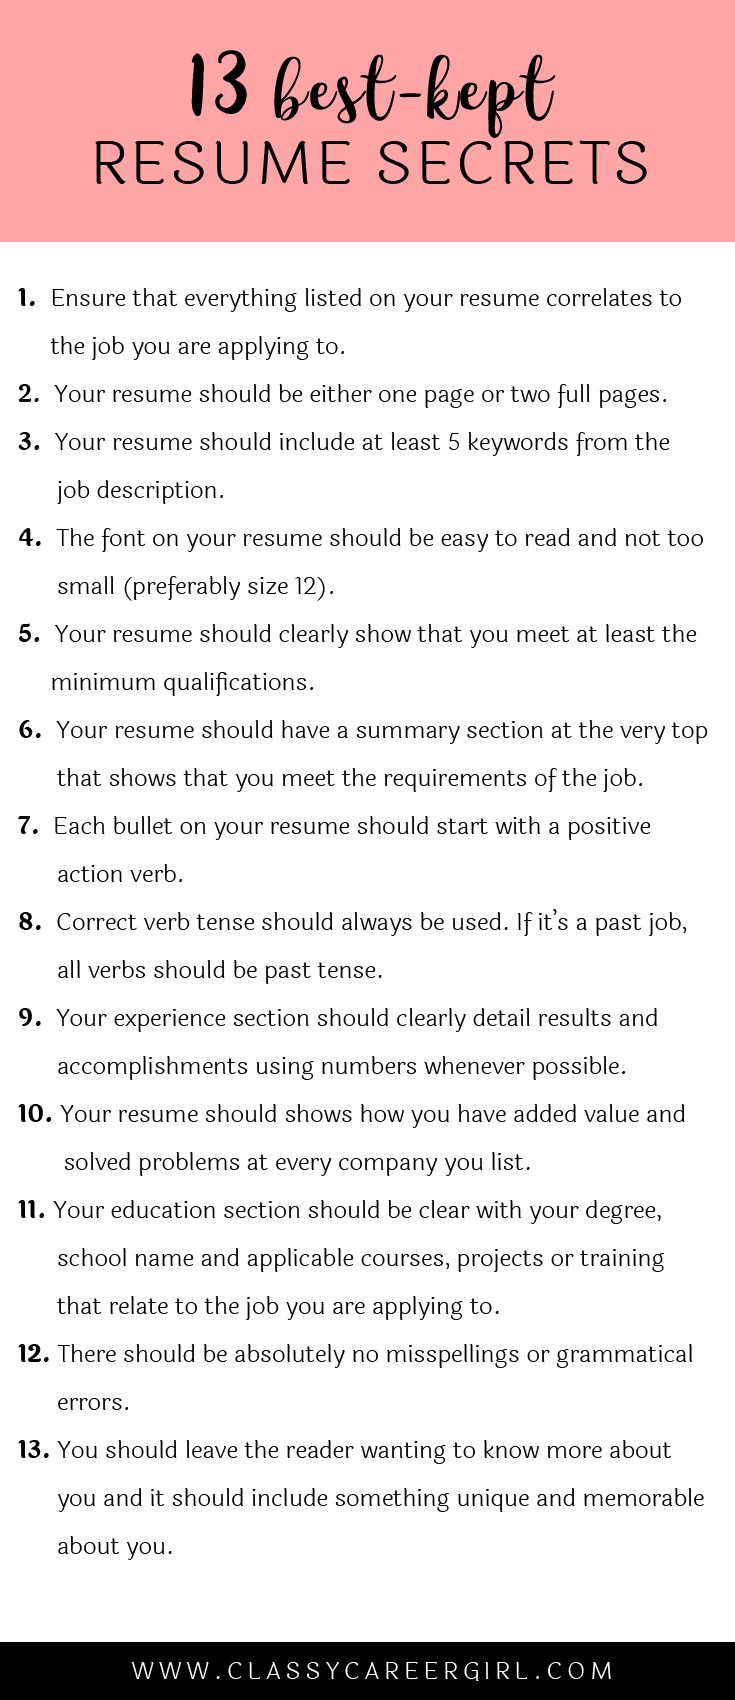 Picnictoimpeachus  Inspiring  Ideas About Resume On Pinterest  Cv Format Resume Cv And  With Engaging Some Hiring Managers Will Toss Your Resume Out If You Dont Know These  With Adorable Build Your Own Resume Free Also House Cleaner Resume In Addition Dispatcher Resume Sample And Sample Resume For Office Assistant As Well As How To Write A Reference Page For A Resume Additionally Quality Assurance Resume Sample From Pinterestcom With Picnictoimpeachus  Engaging  Ideas About Resume On Pinterest  Cv Format Resume Cv And  With Adorable Some Hiring Managers Will Toss Your Resume Out If You Dont Know These  And Inspiring Build Your Own Resume Free Also House Cleaner Resume In Addition Dispatcher Resume Sample From Pinterestcom